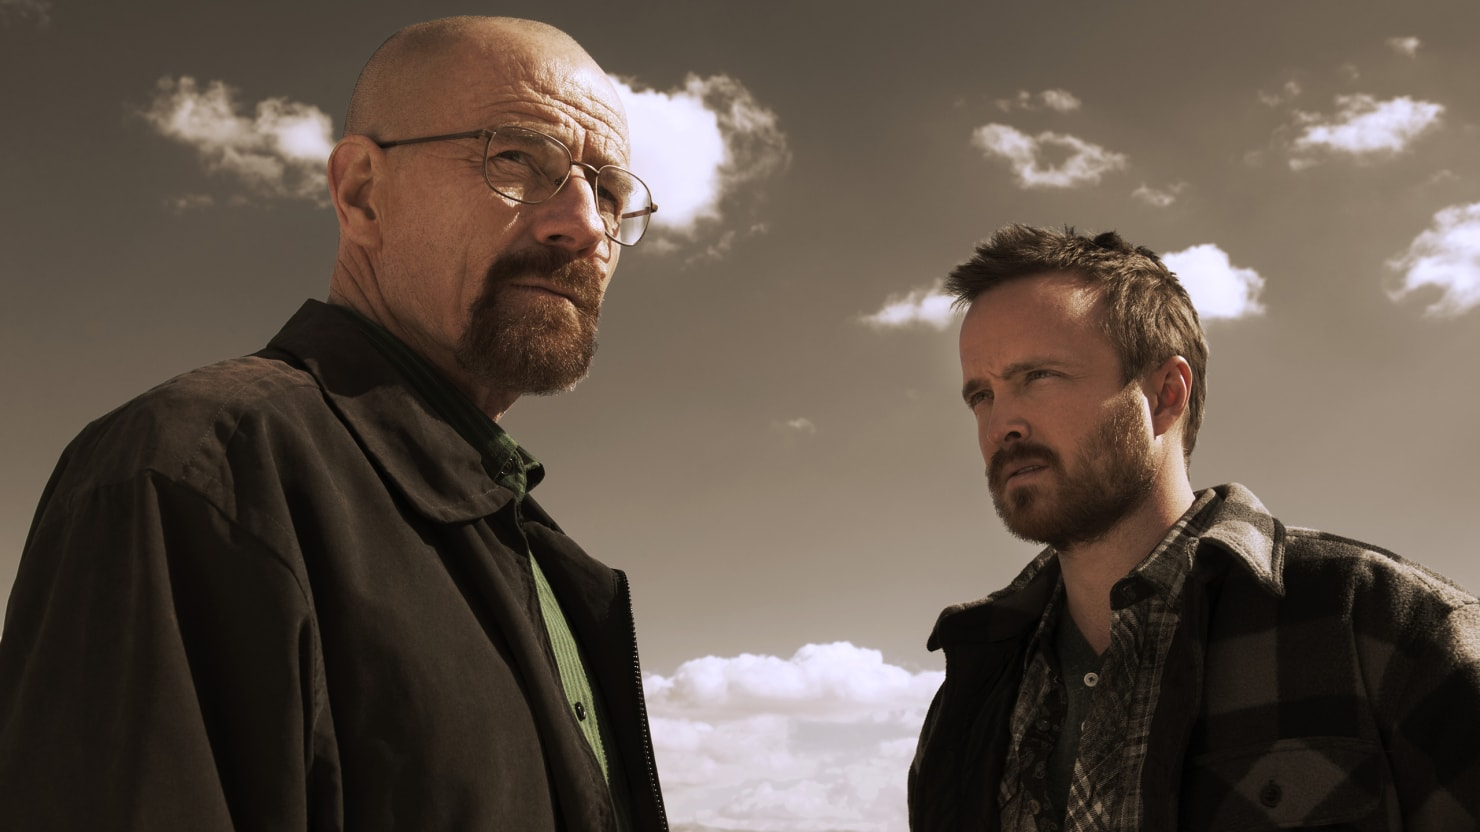 breaking bad': the 7 plot points you need to remember for the final